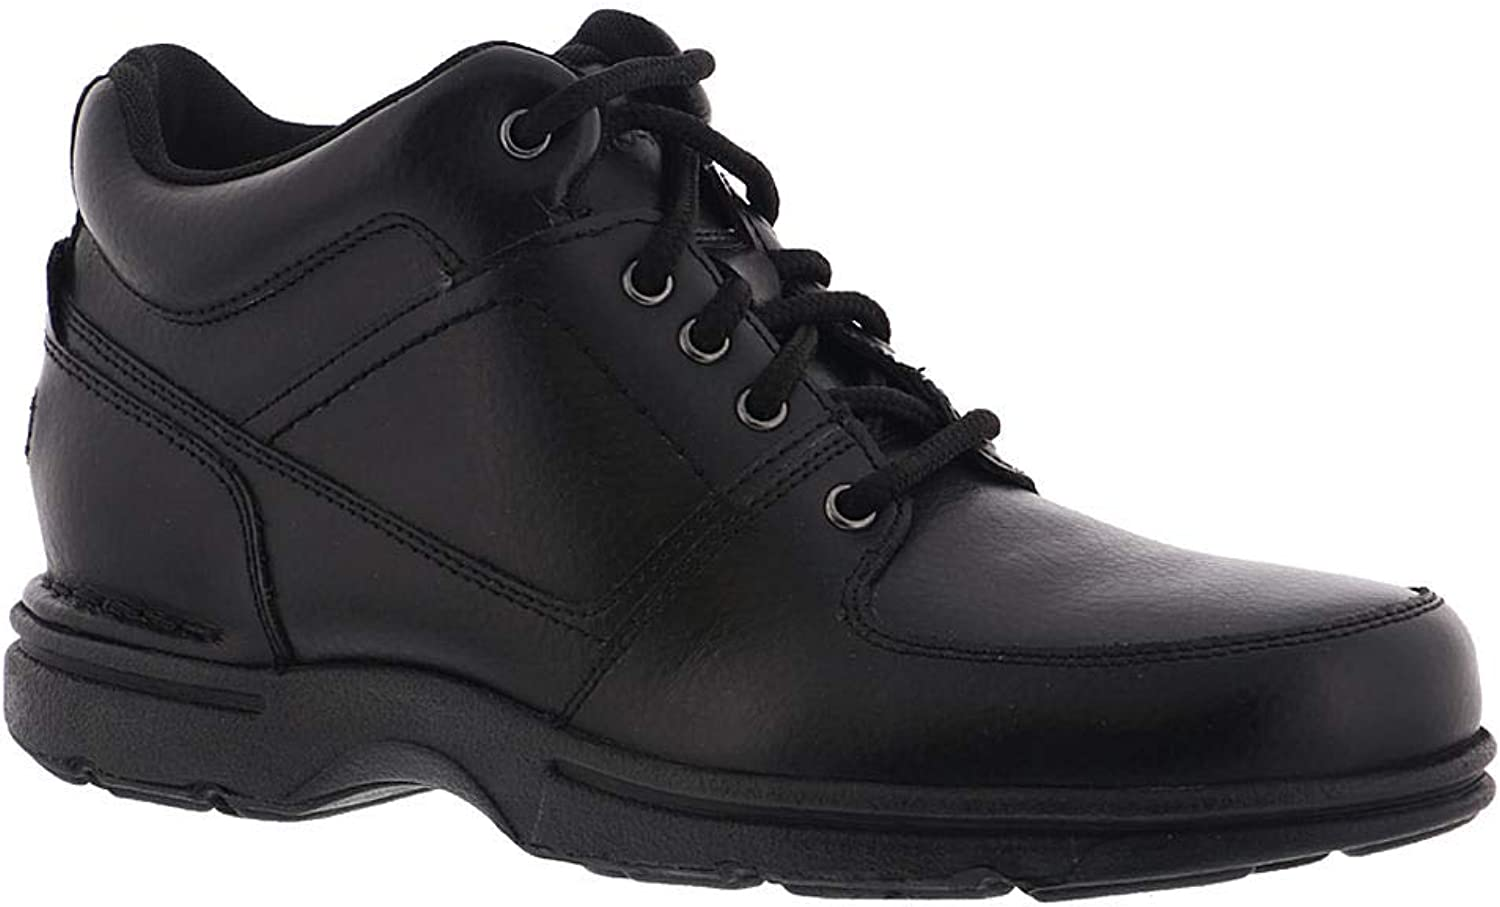 Rockport Mens Eureka Leather Closed Toe Ankle Fashion Boots, Black, Size 12.0 US   11.5 UK US